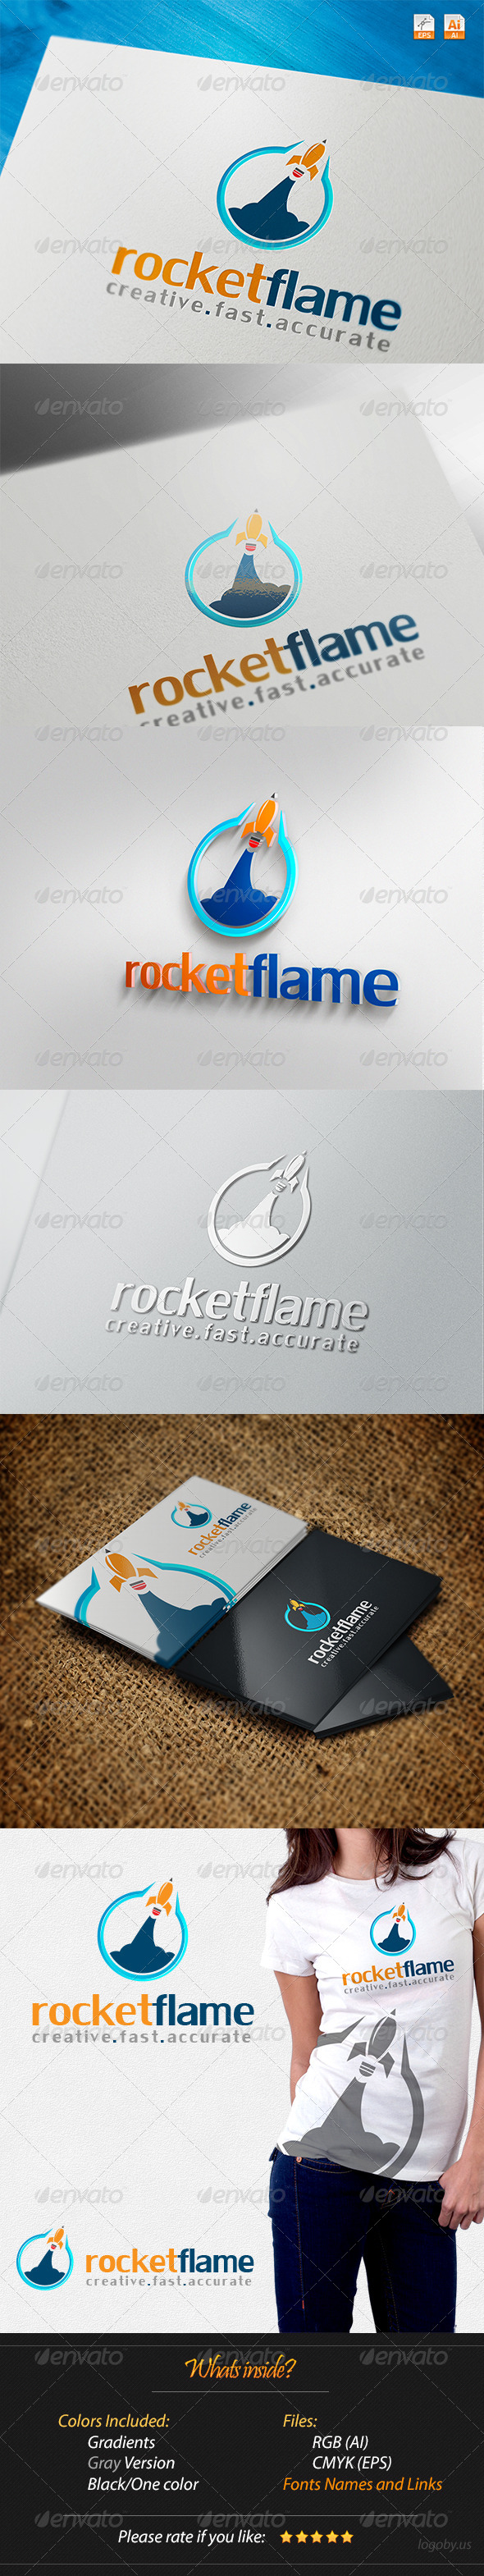 GraphicRiver Rocket Flame Creative Fast Accurate Logo 4245877